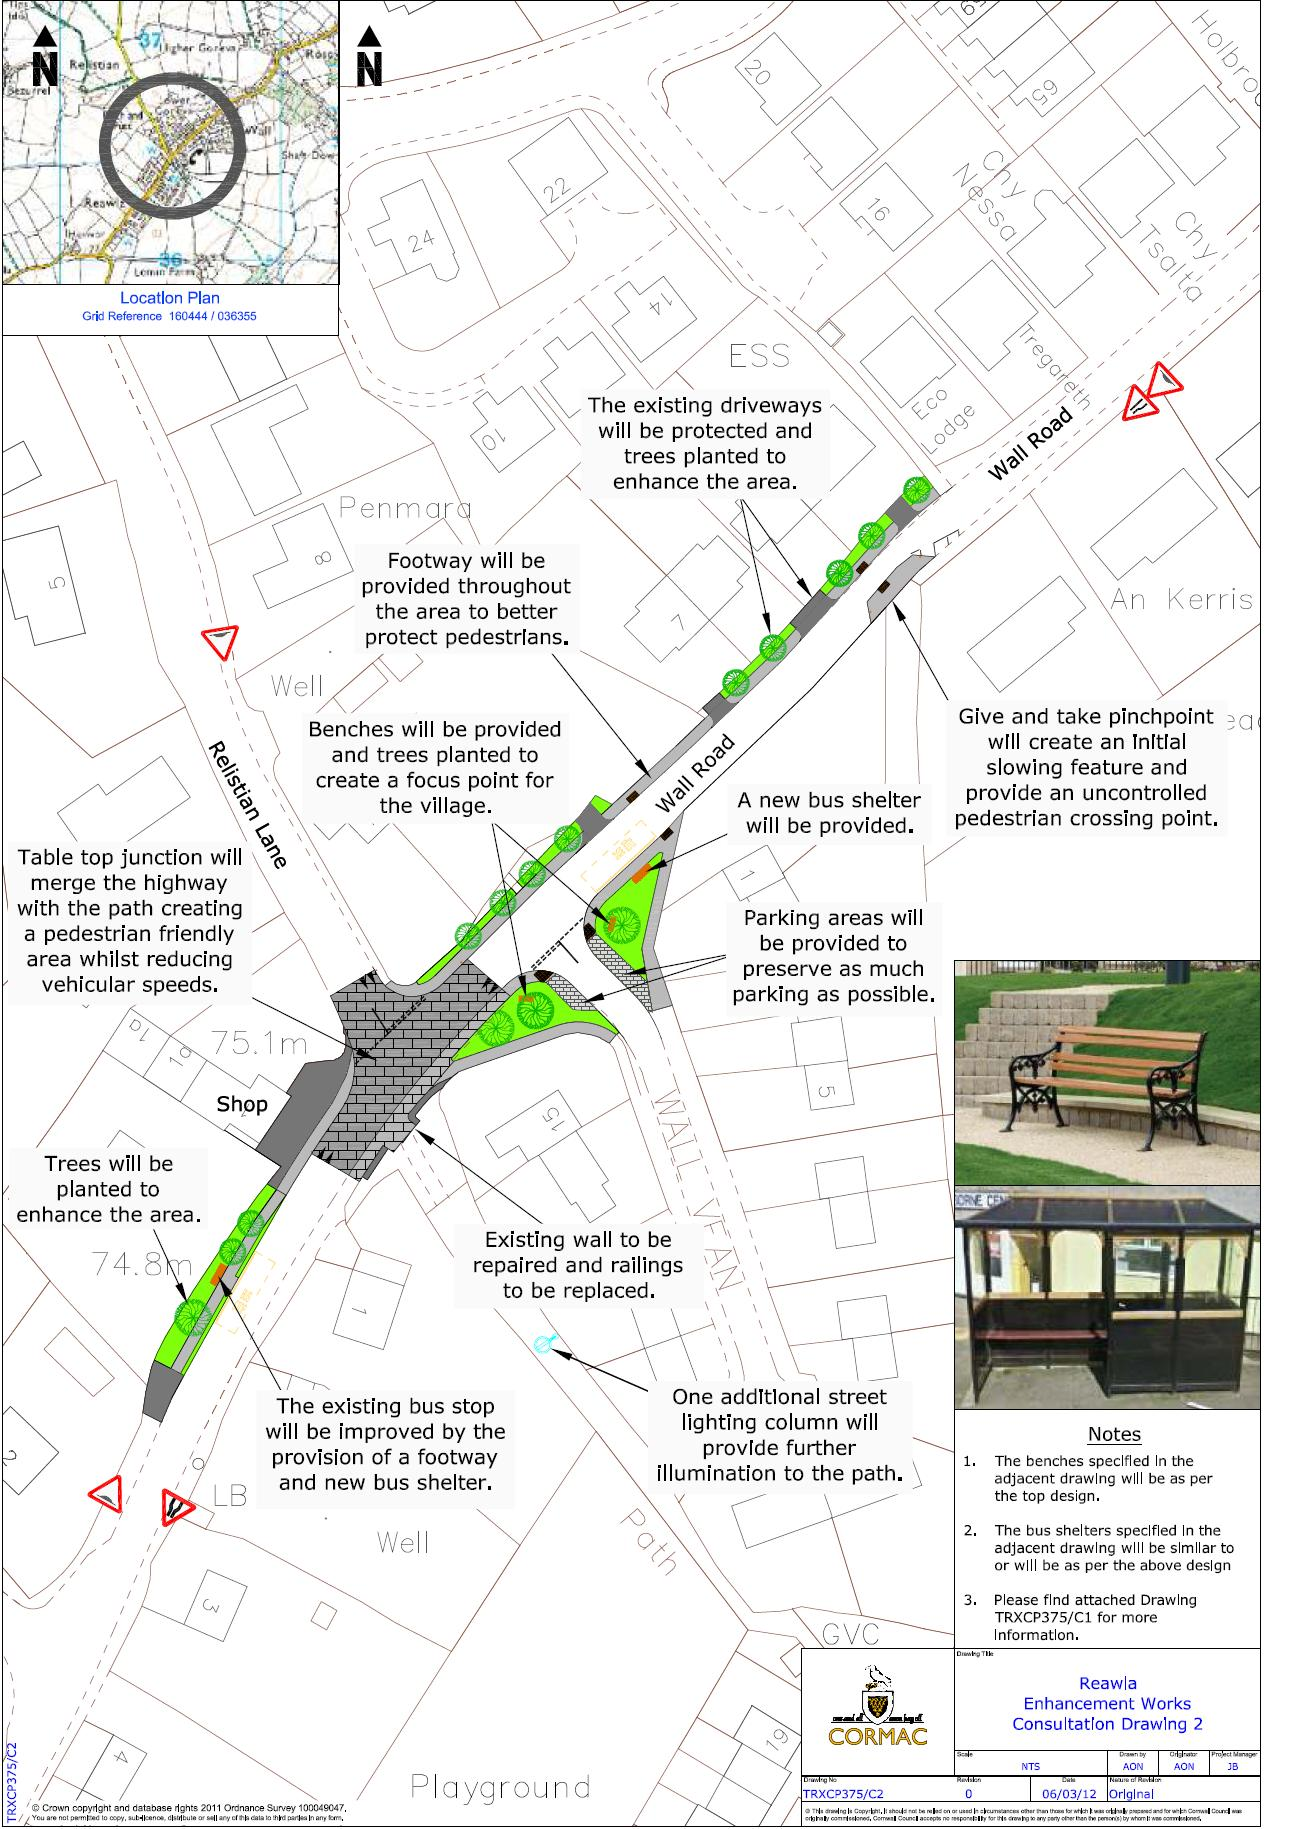 Reawla Streetscape Consultation event